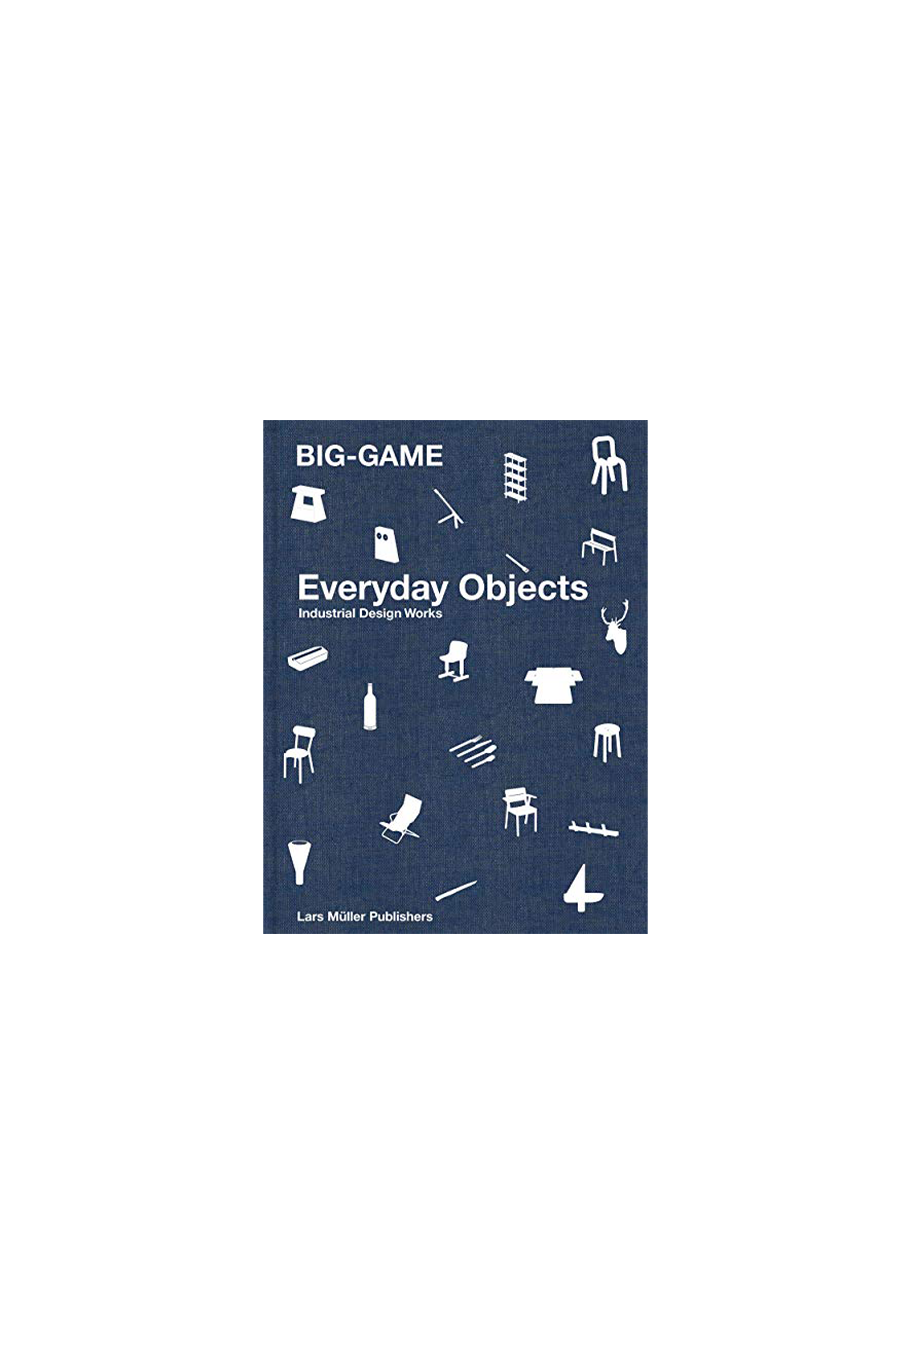 BIG-GAME Everyday Objects